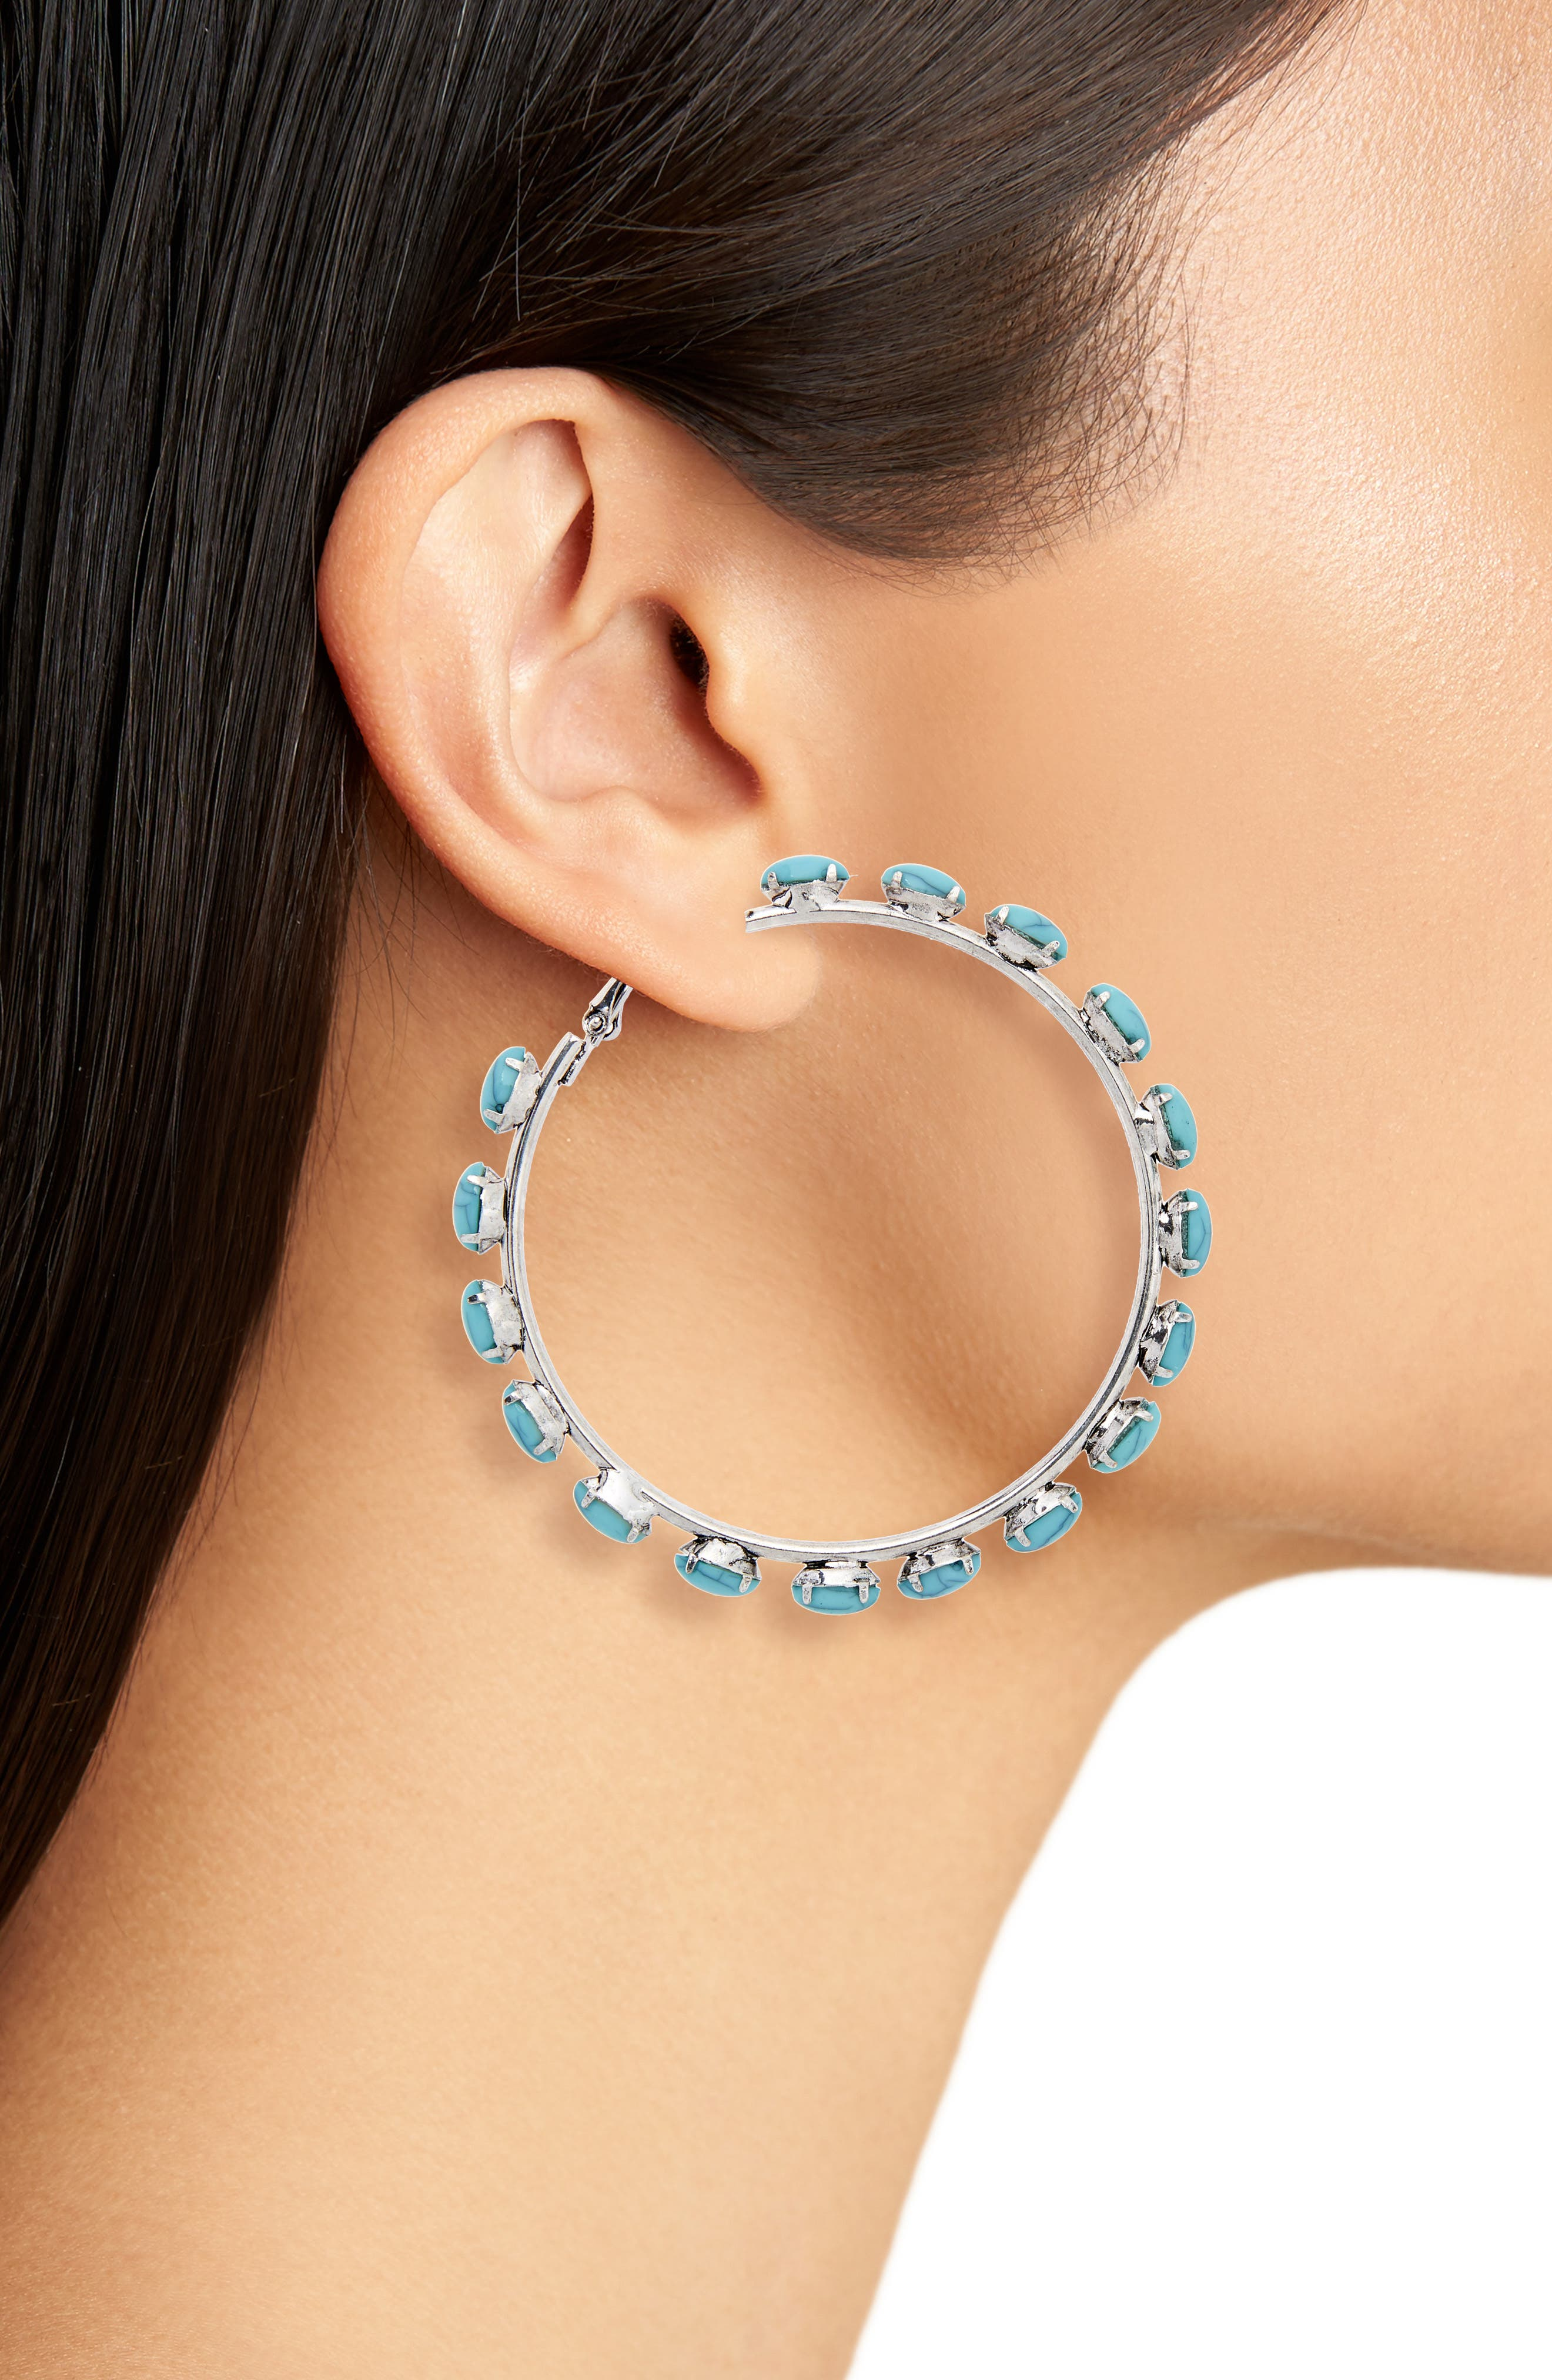 Bead Edge Hoop Earrings,                             Alternate thumbnail 2, color,                             Silver/ Turquoise